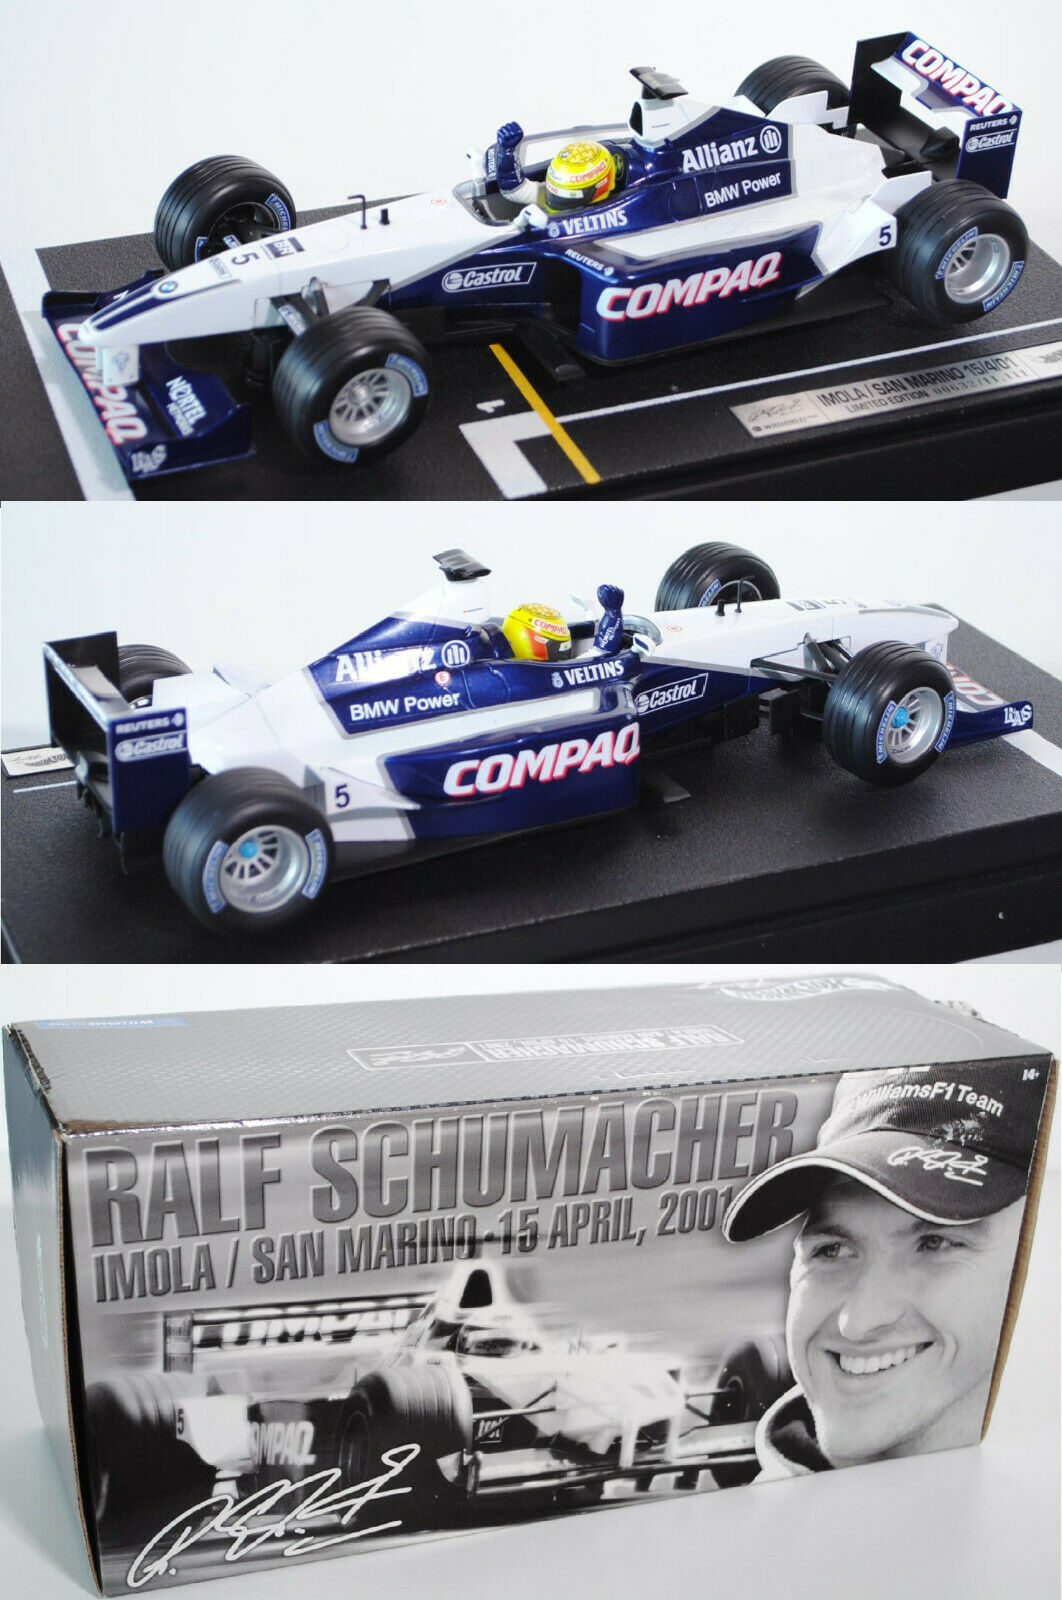 Hot Wheels Racing 55697 Williams FW23 Ralf Schumacher 1 18 OVP limitiert